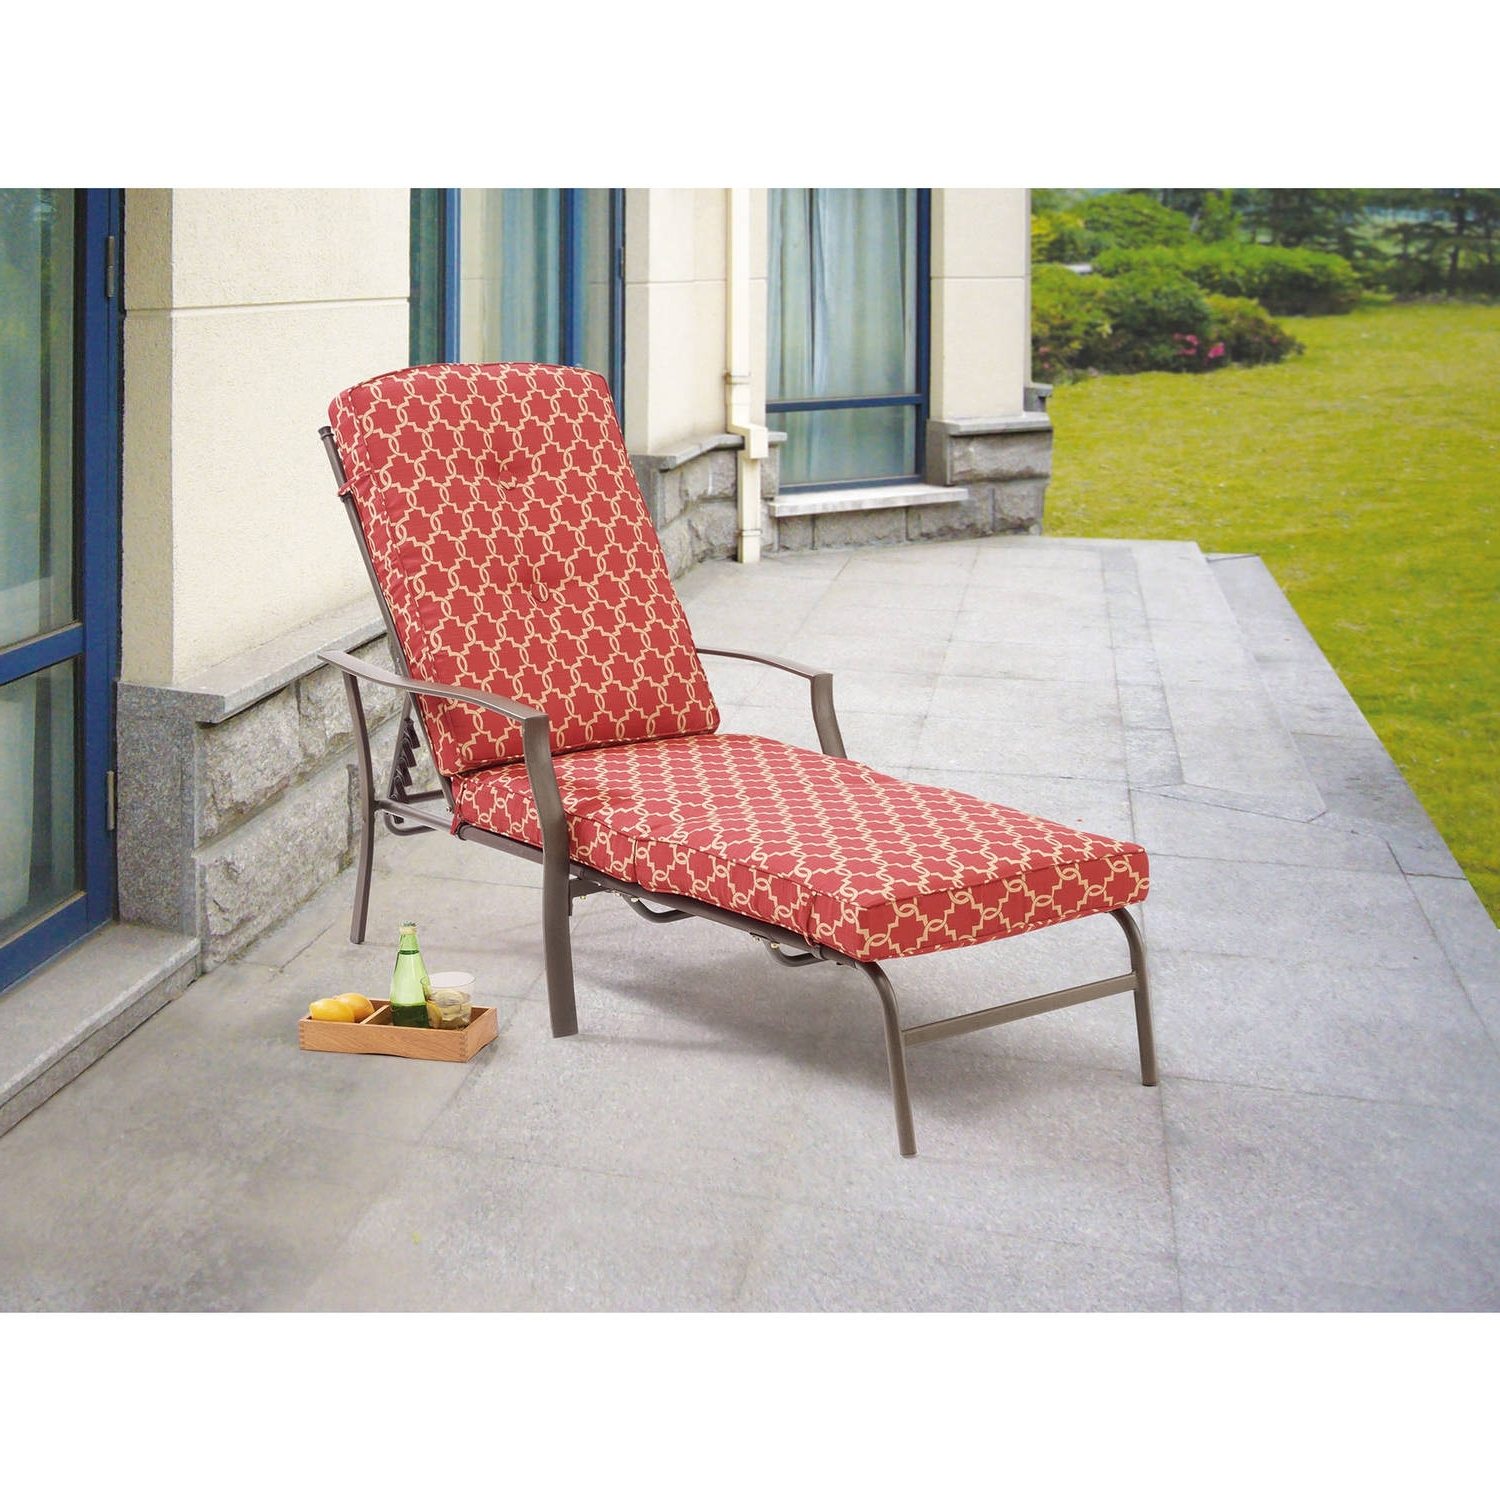 Trendy Martha Stewart Outdoor Chaise Lounge Chairs Pertaining To Ideas Collection Martha Stewart Chaise Lounge In Chaise Lounge (View 8 of 15)